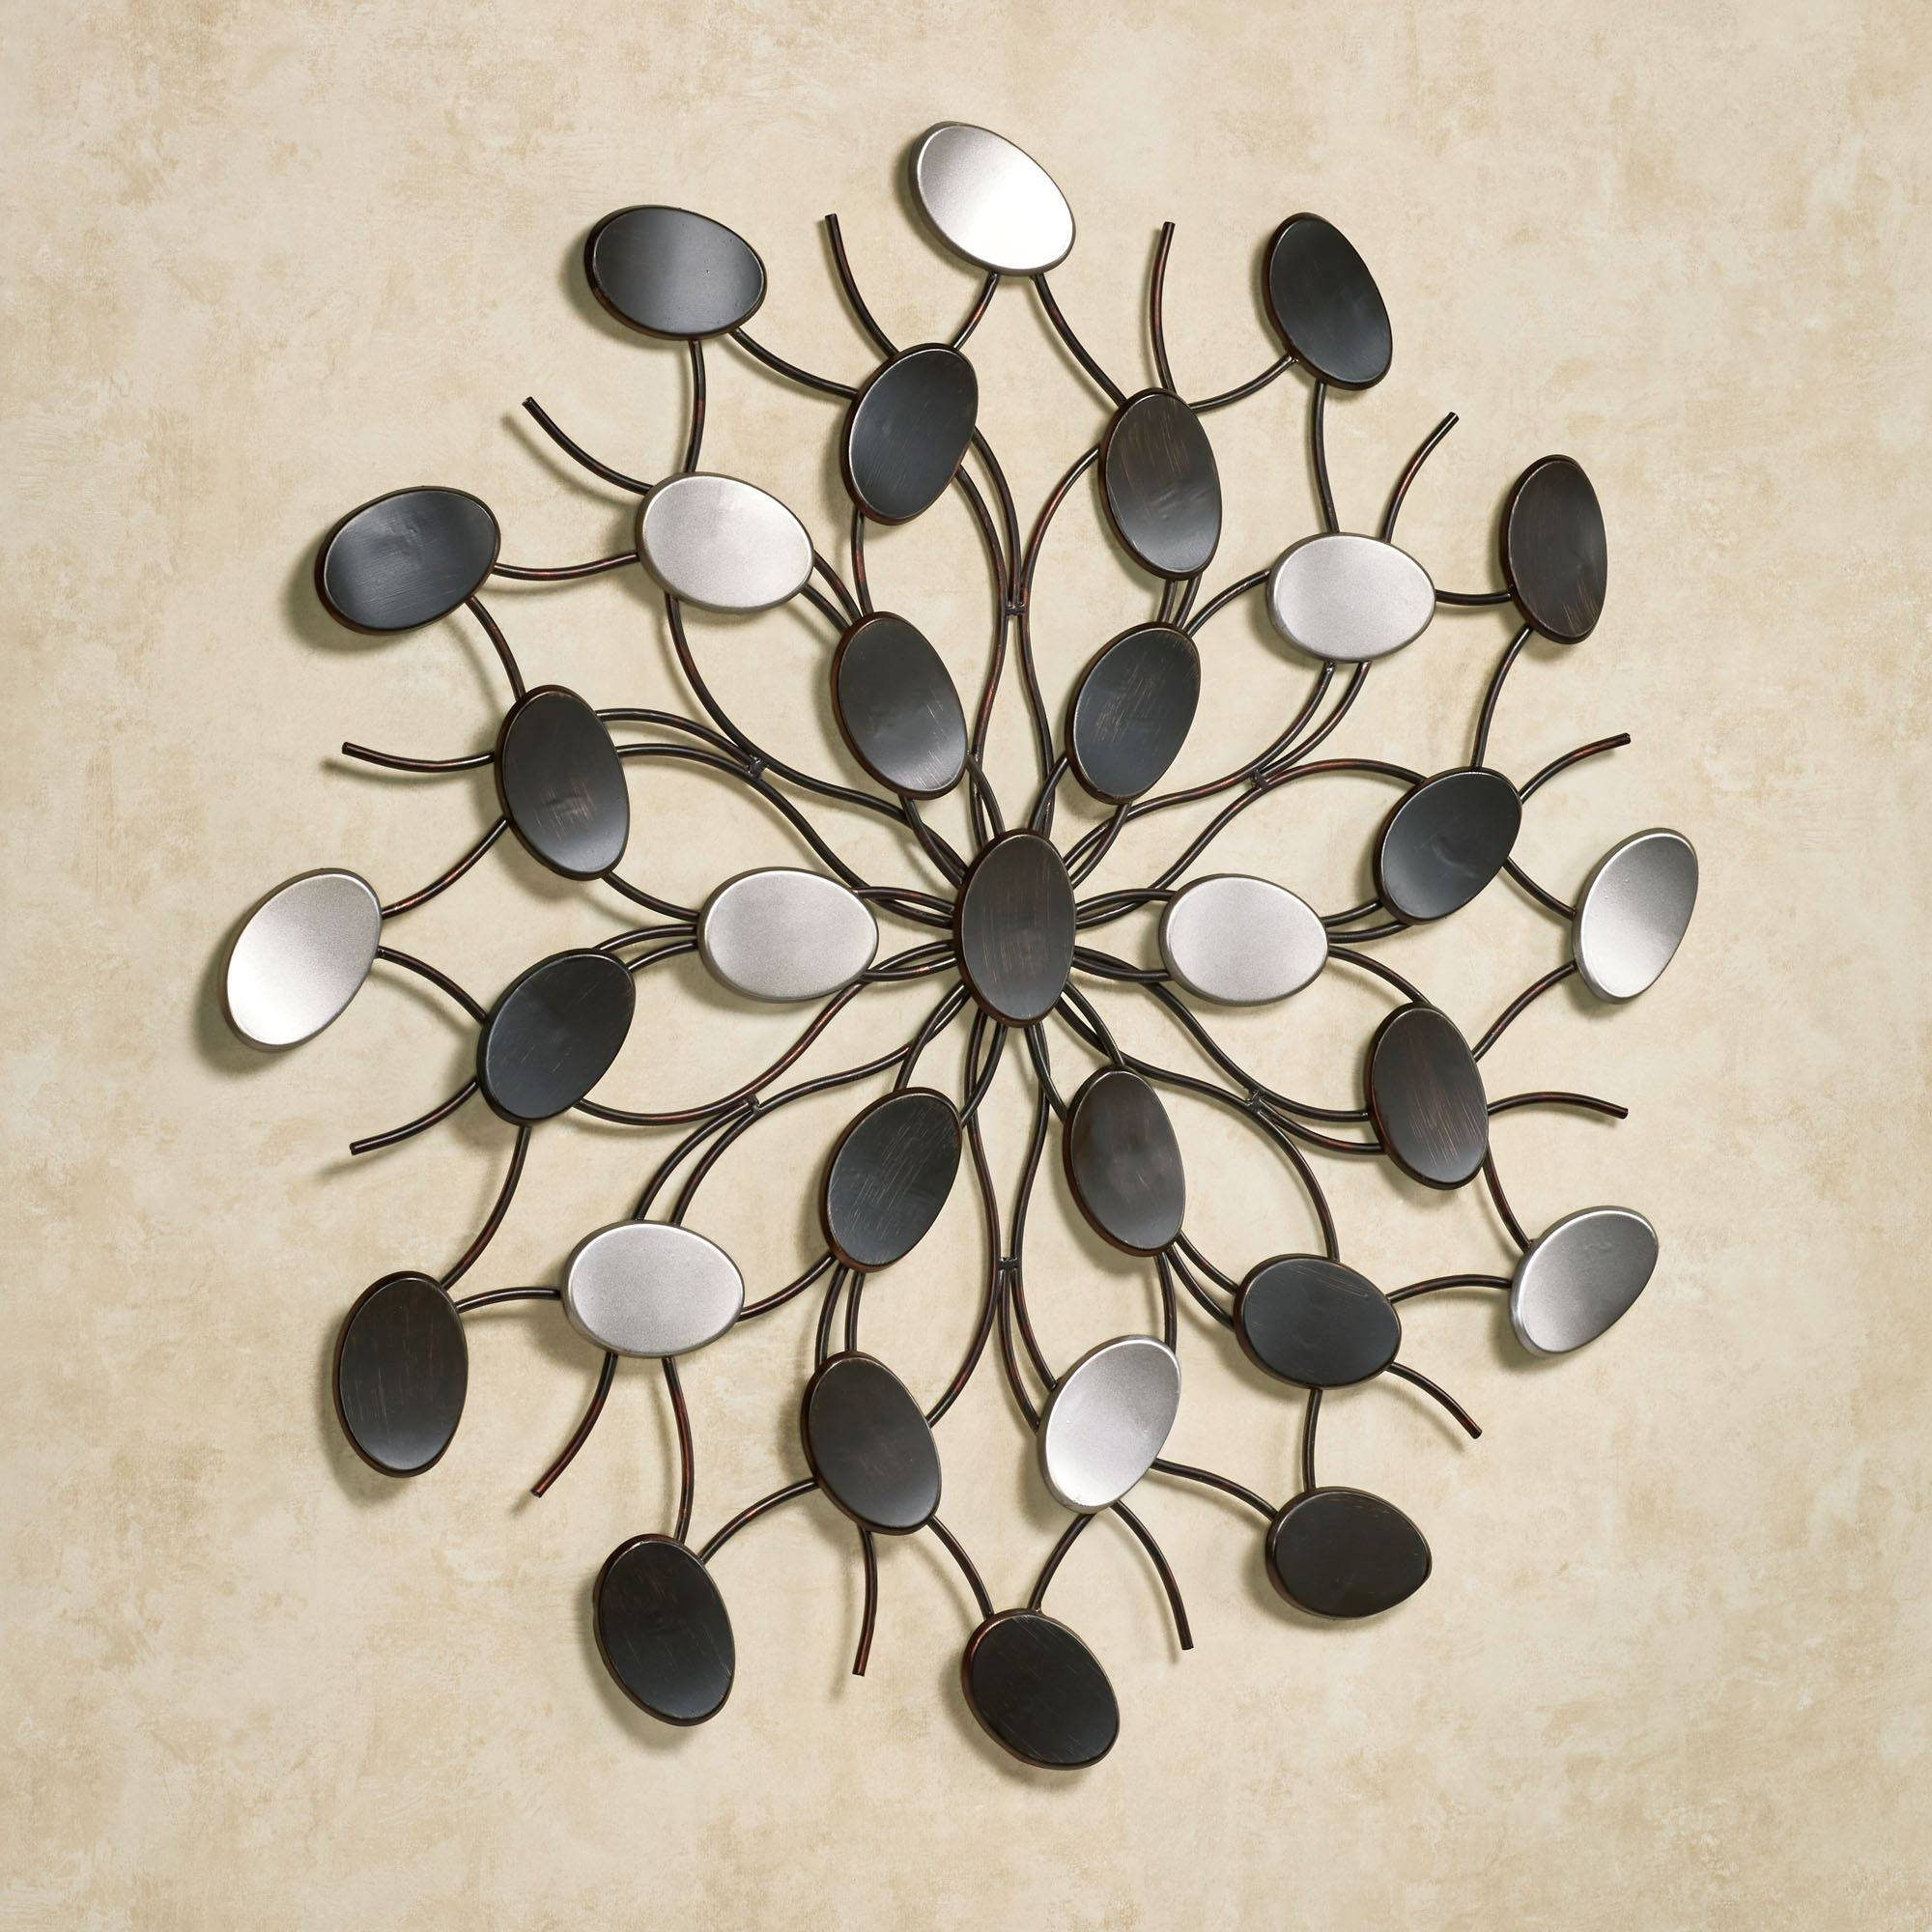 Radiant Petals Abstract Metal Wall Art Regarding Newest Metallic Wall Art (View 16 of 25)